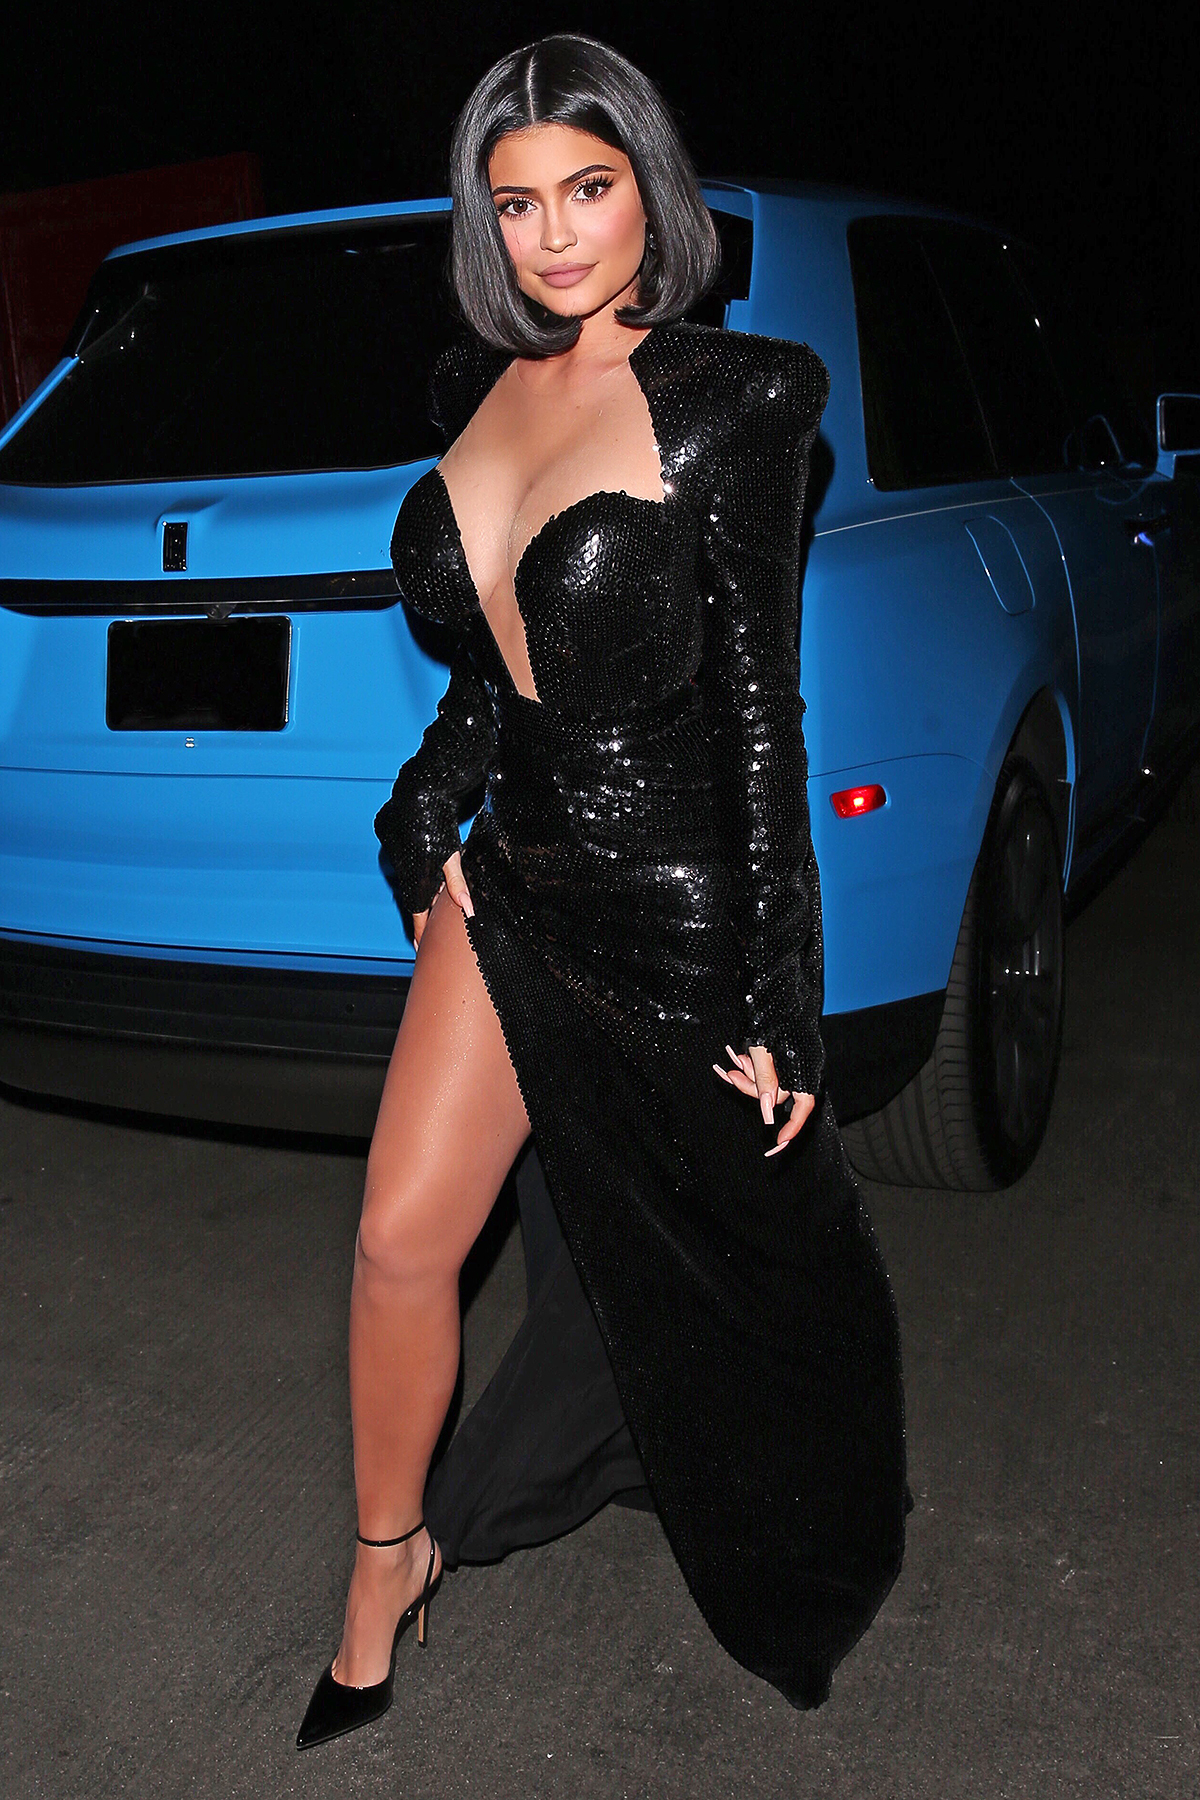 Reality TV Star, Kylie Jenner stuns in a full length sparkling Black high split dress as she was seen heading to Music Mogul 'P.Diddy's' Private Exclusive A-List Party in Holmby Hills, CA